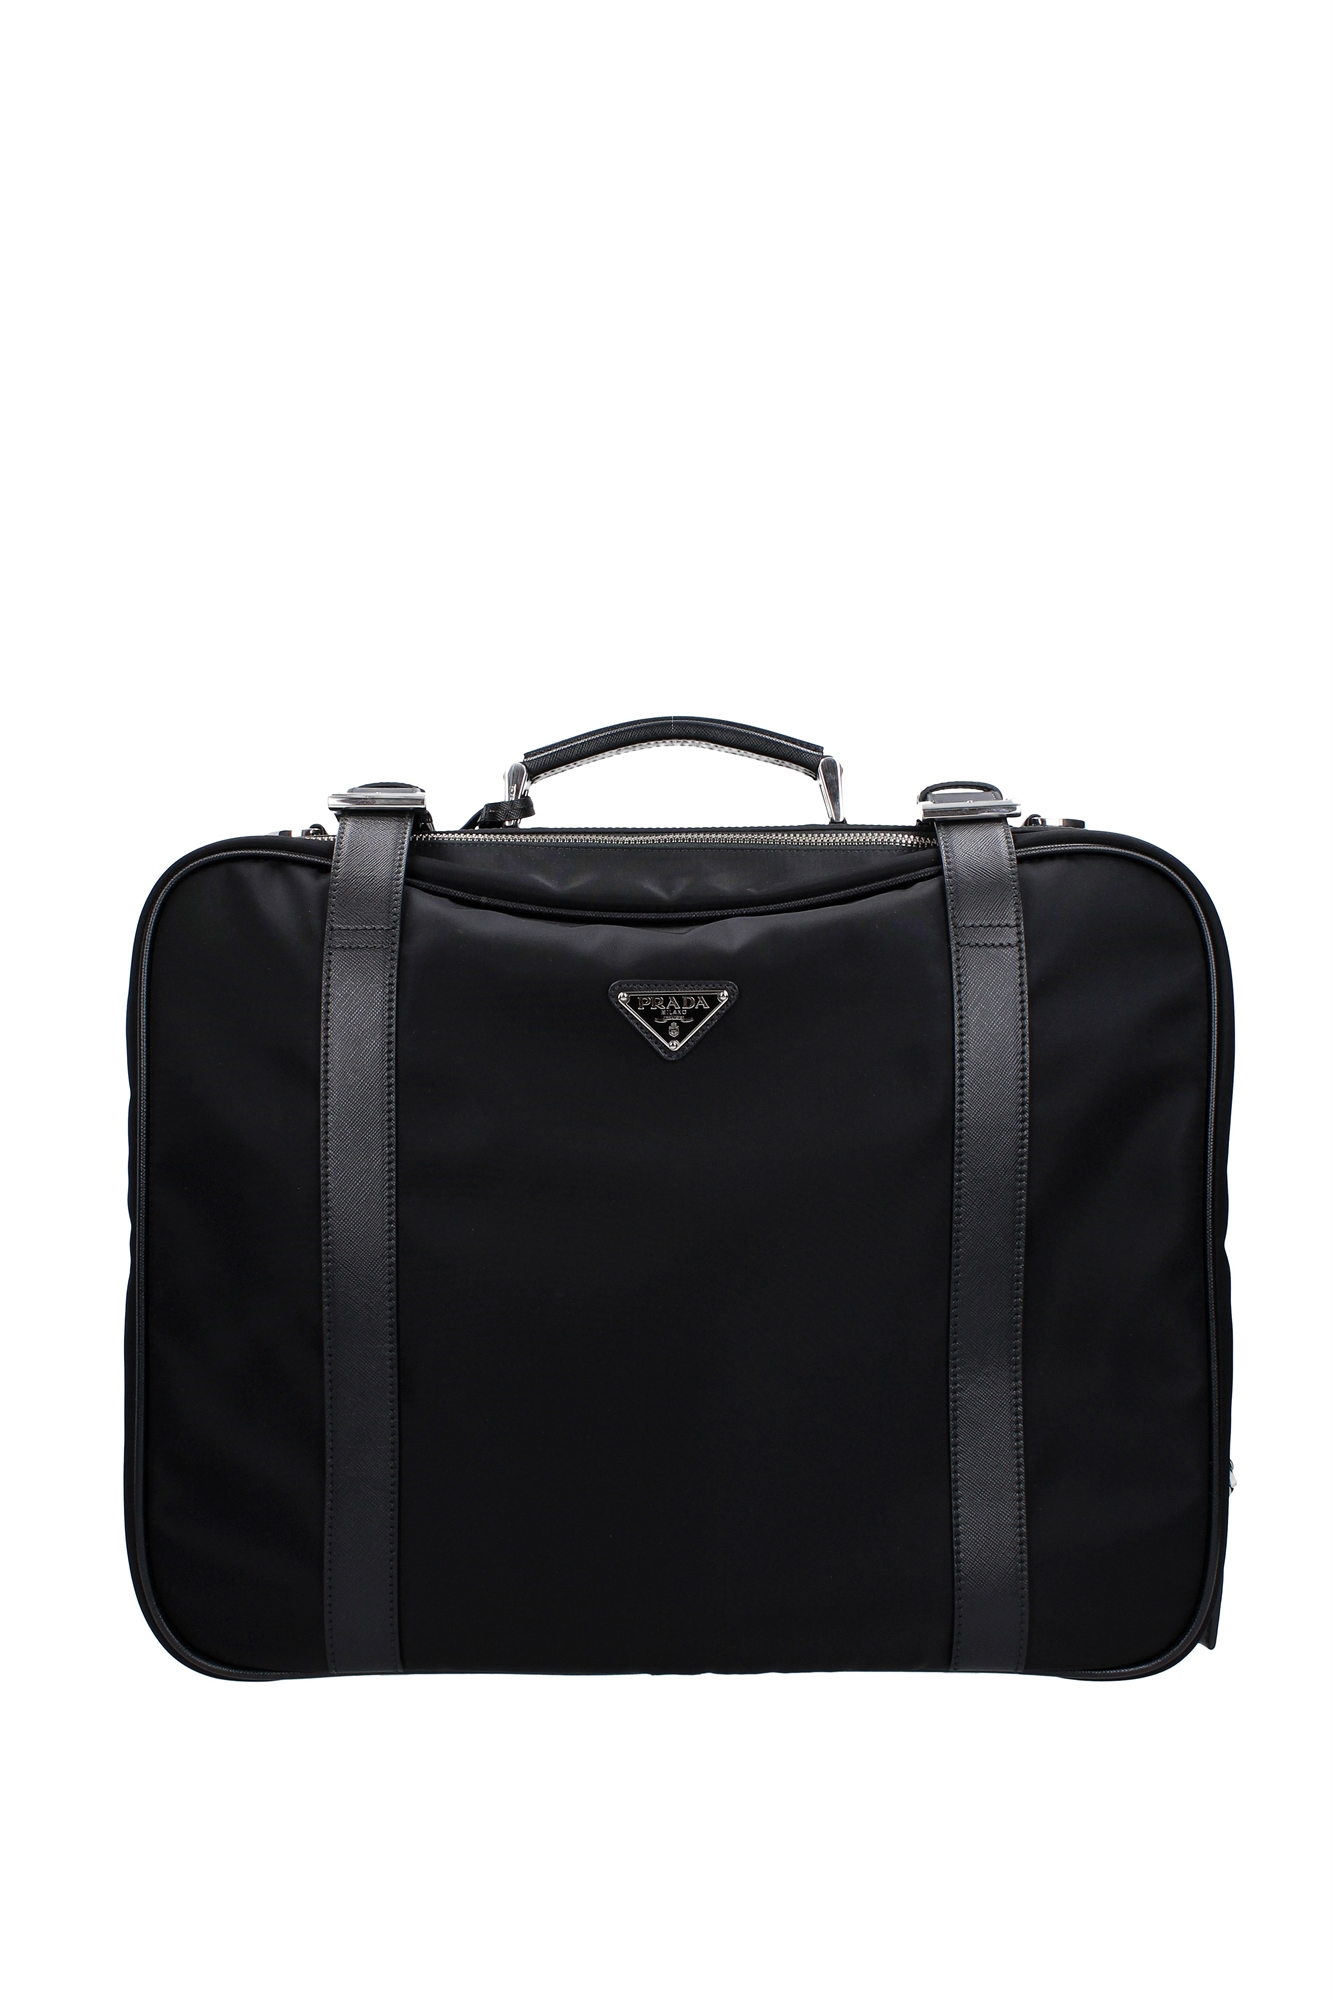 687e7bb2c0f97a Prada Travel Bags Luggage | Stanford Center for Opportunity Policy ...